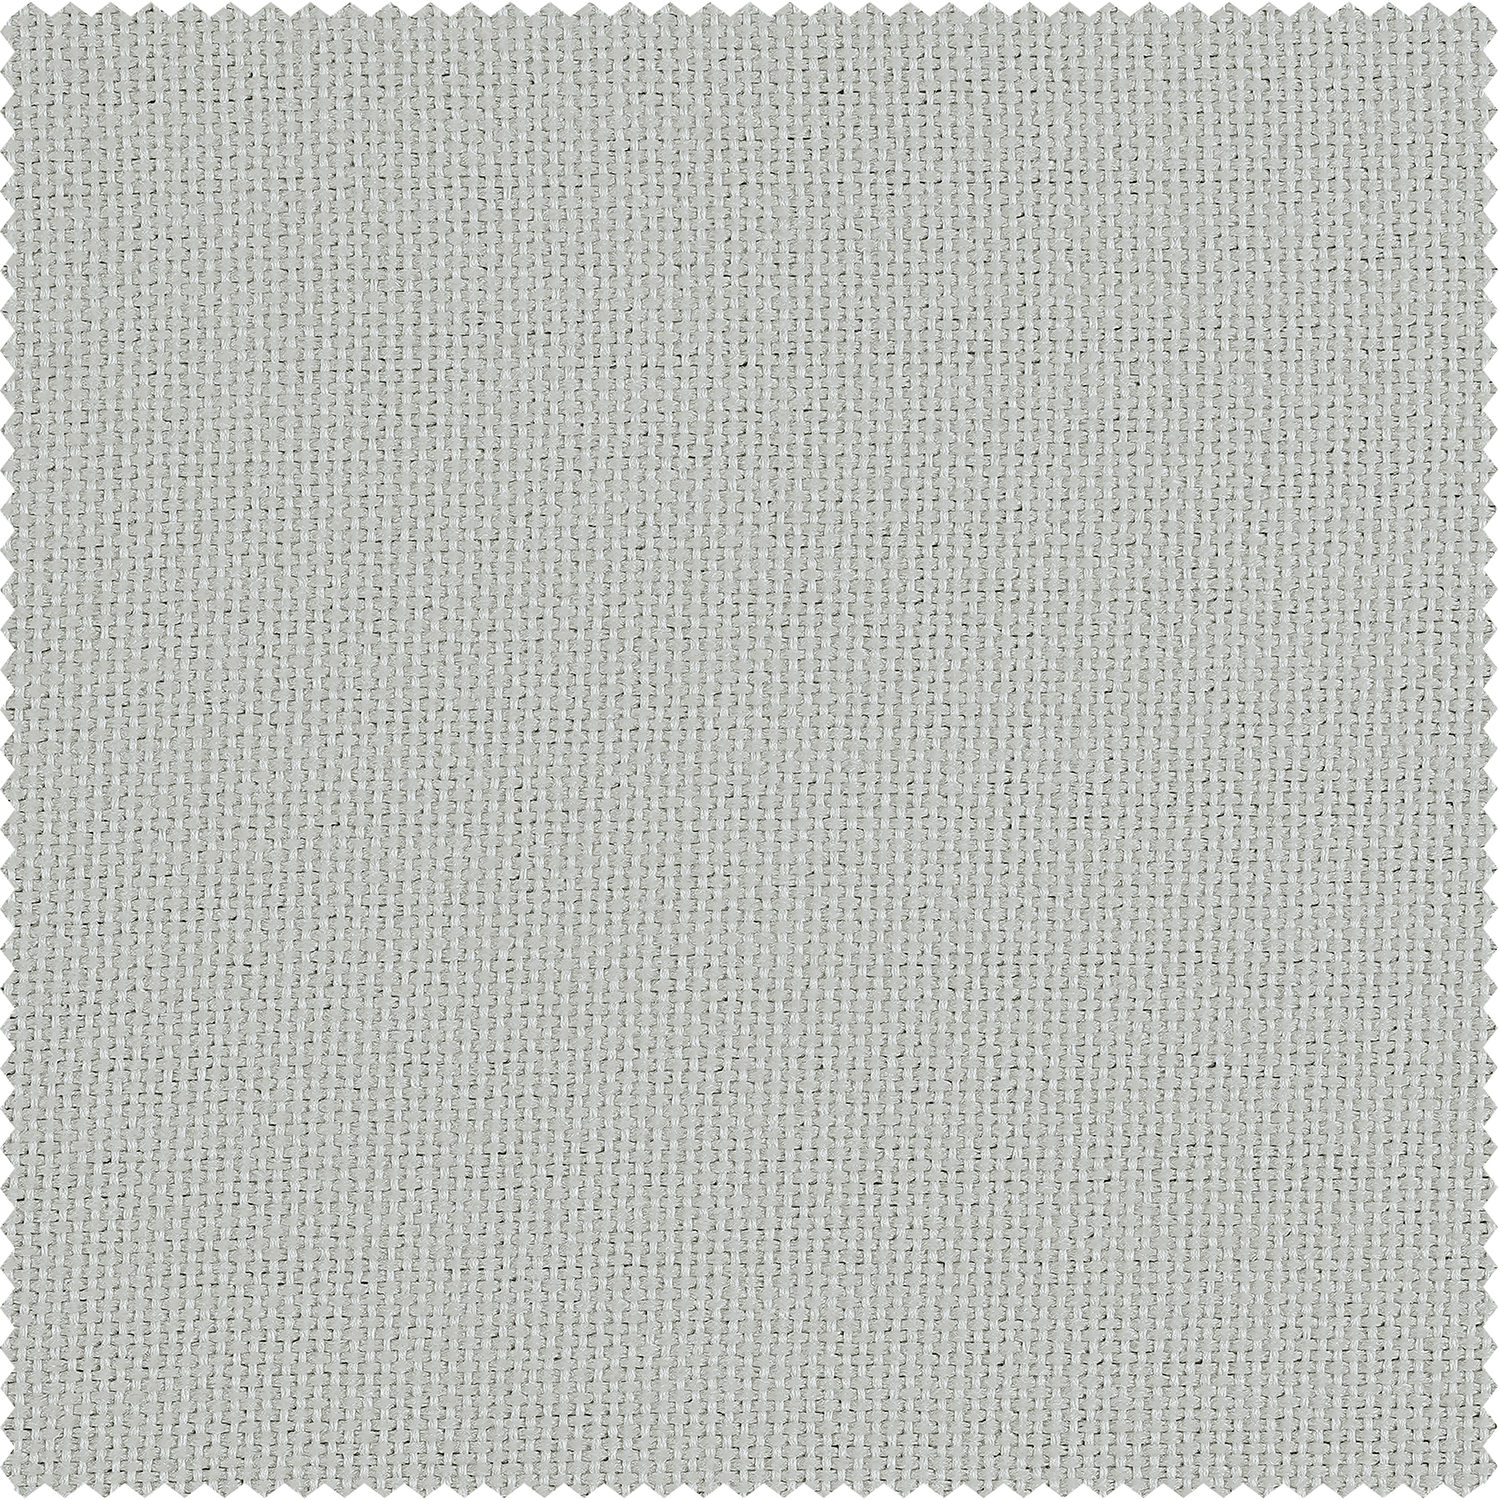 Oyster Faux Linen Room Darkening Swatch